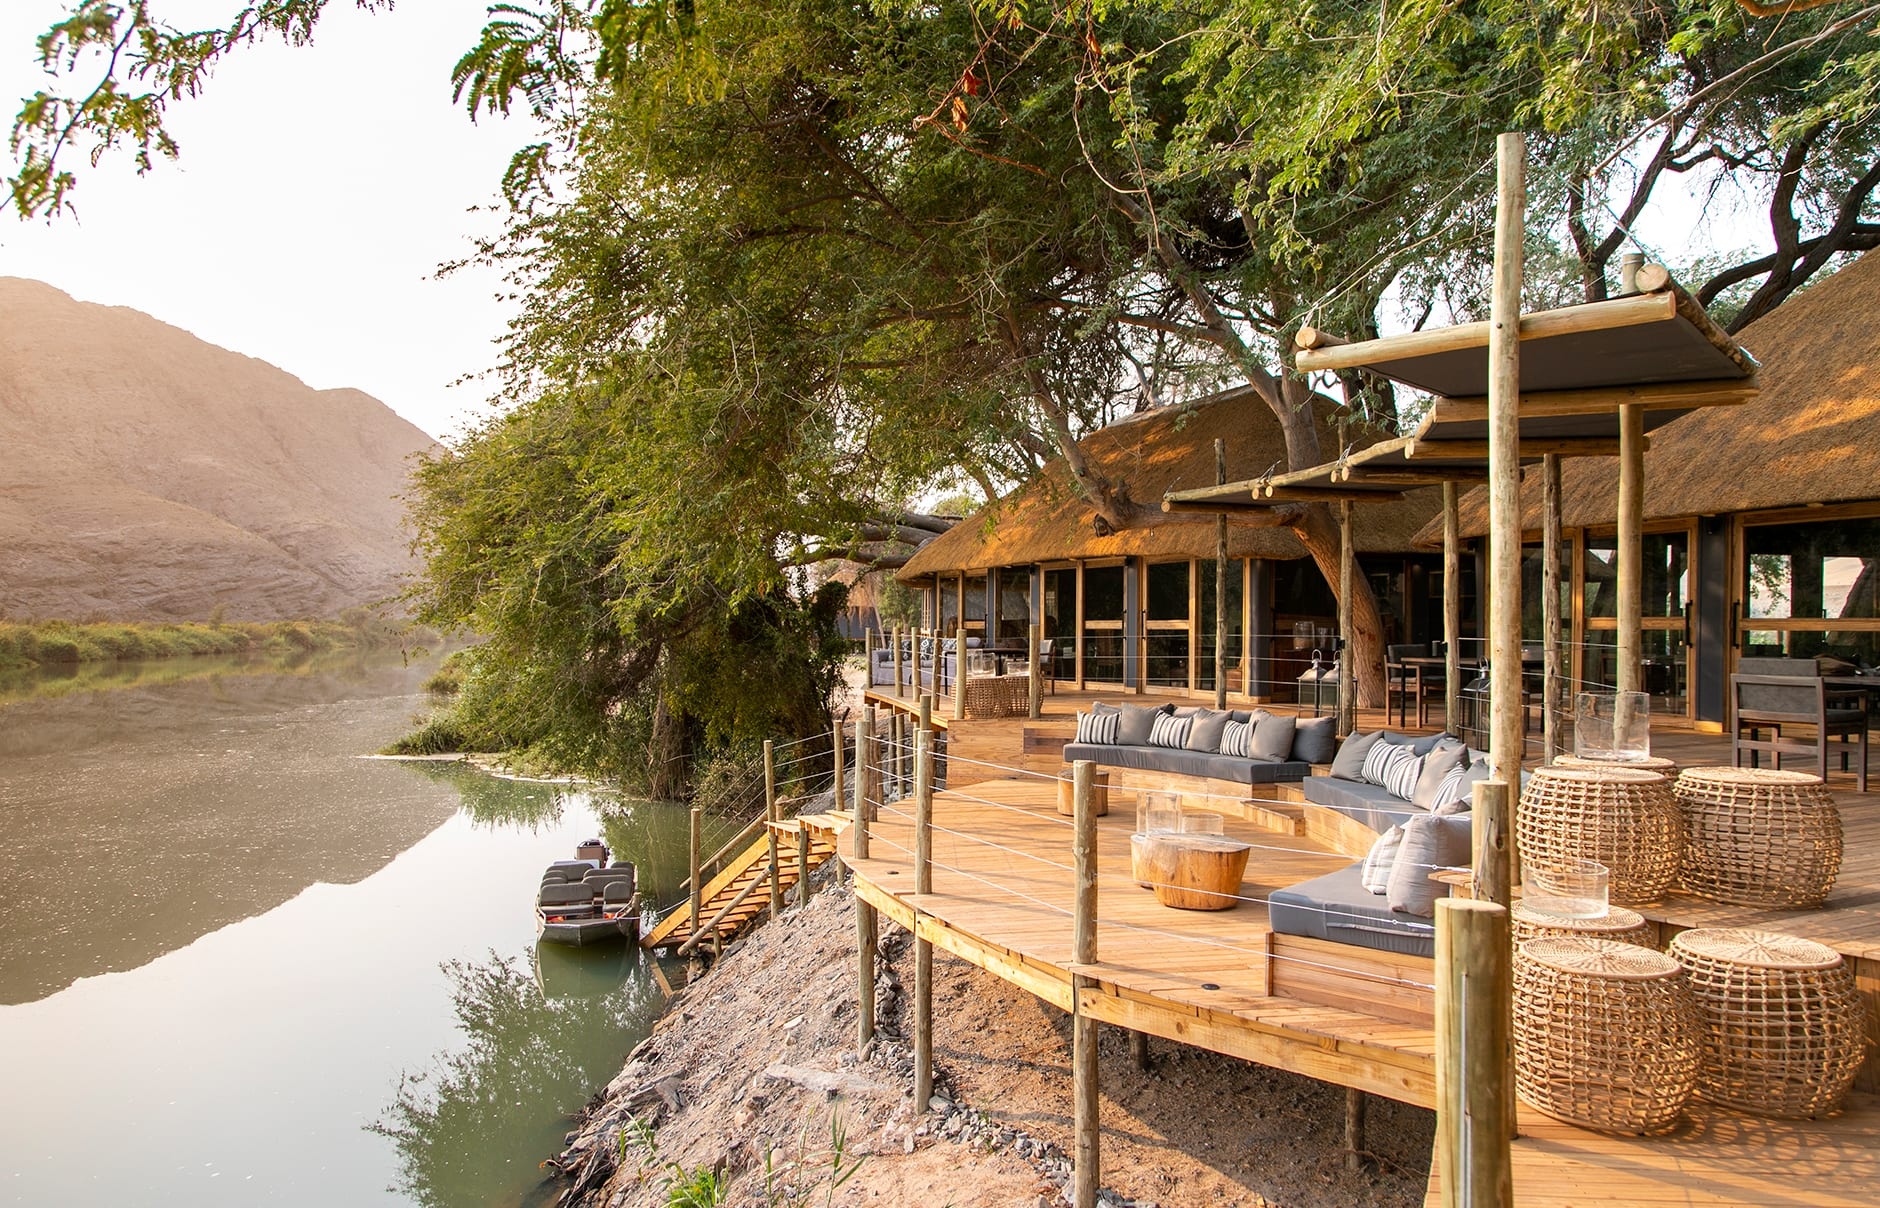 Serra Cafema Camp, Kaokoland, Namibia. Hotel Review by TravelPlusStyle. Photo © Wilderness Safaris